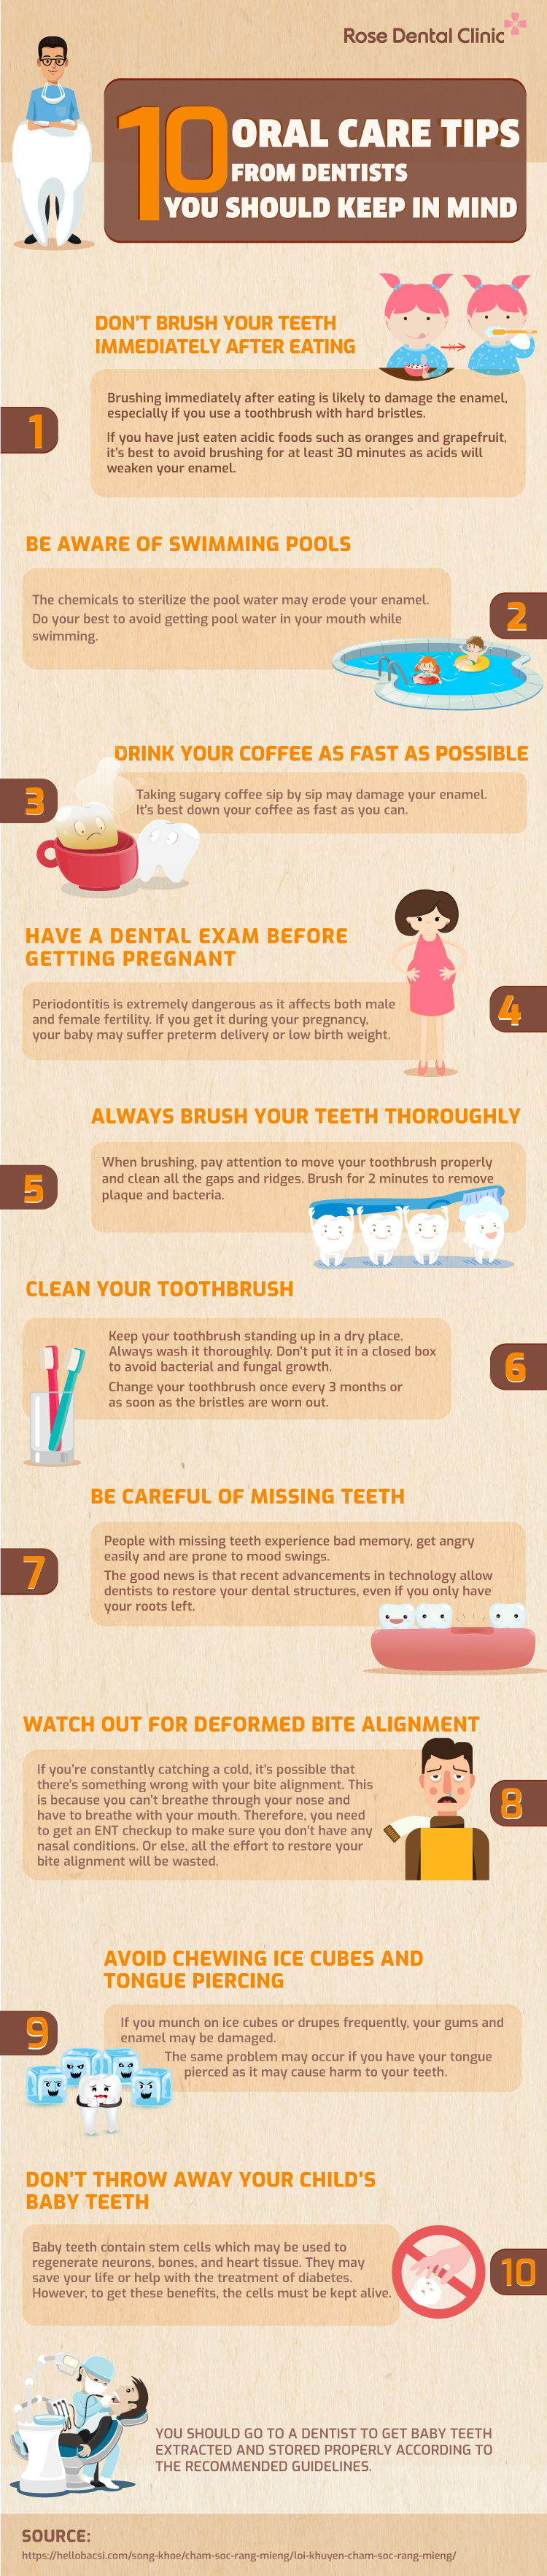 oral care tips